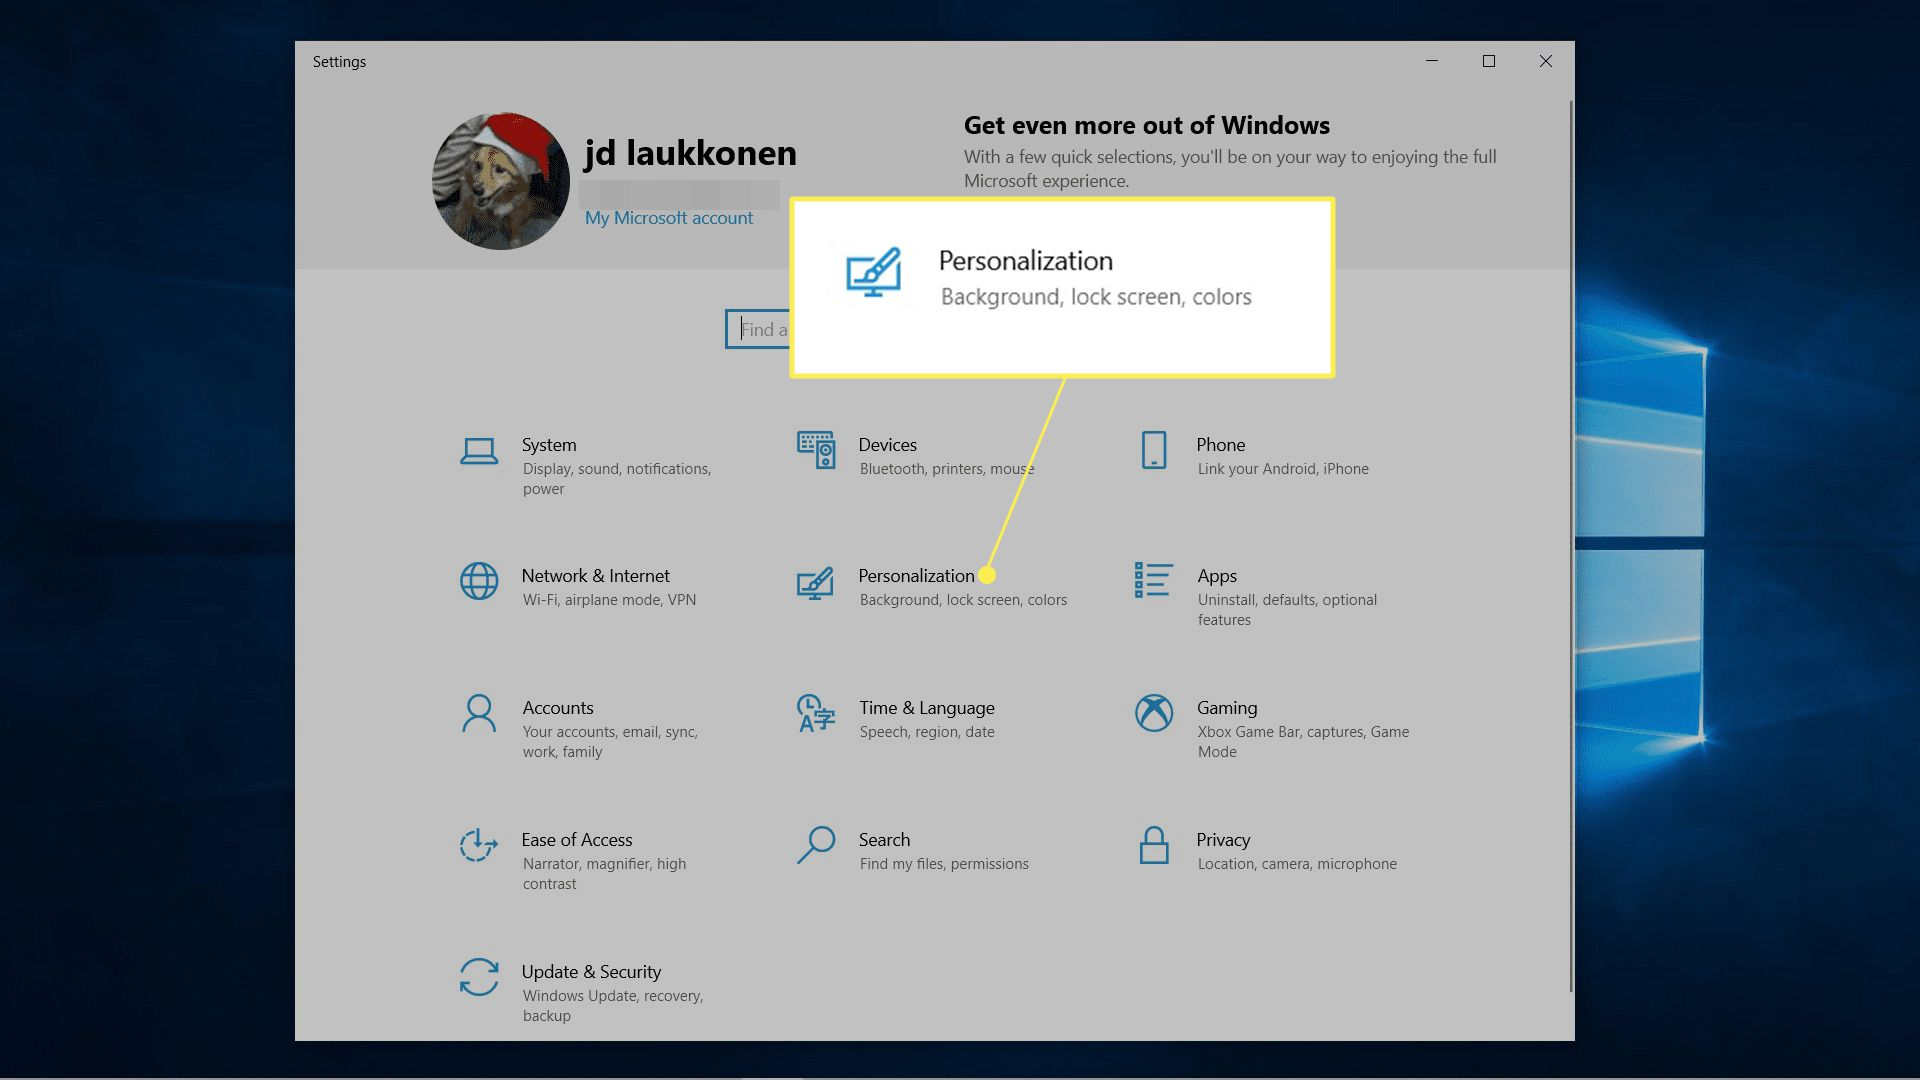 Personalization highlighted in Windows 10 settings.